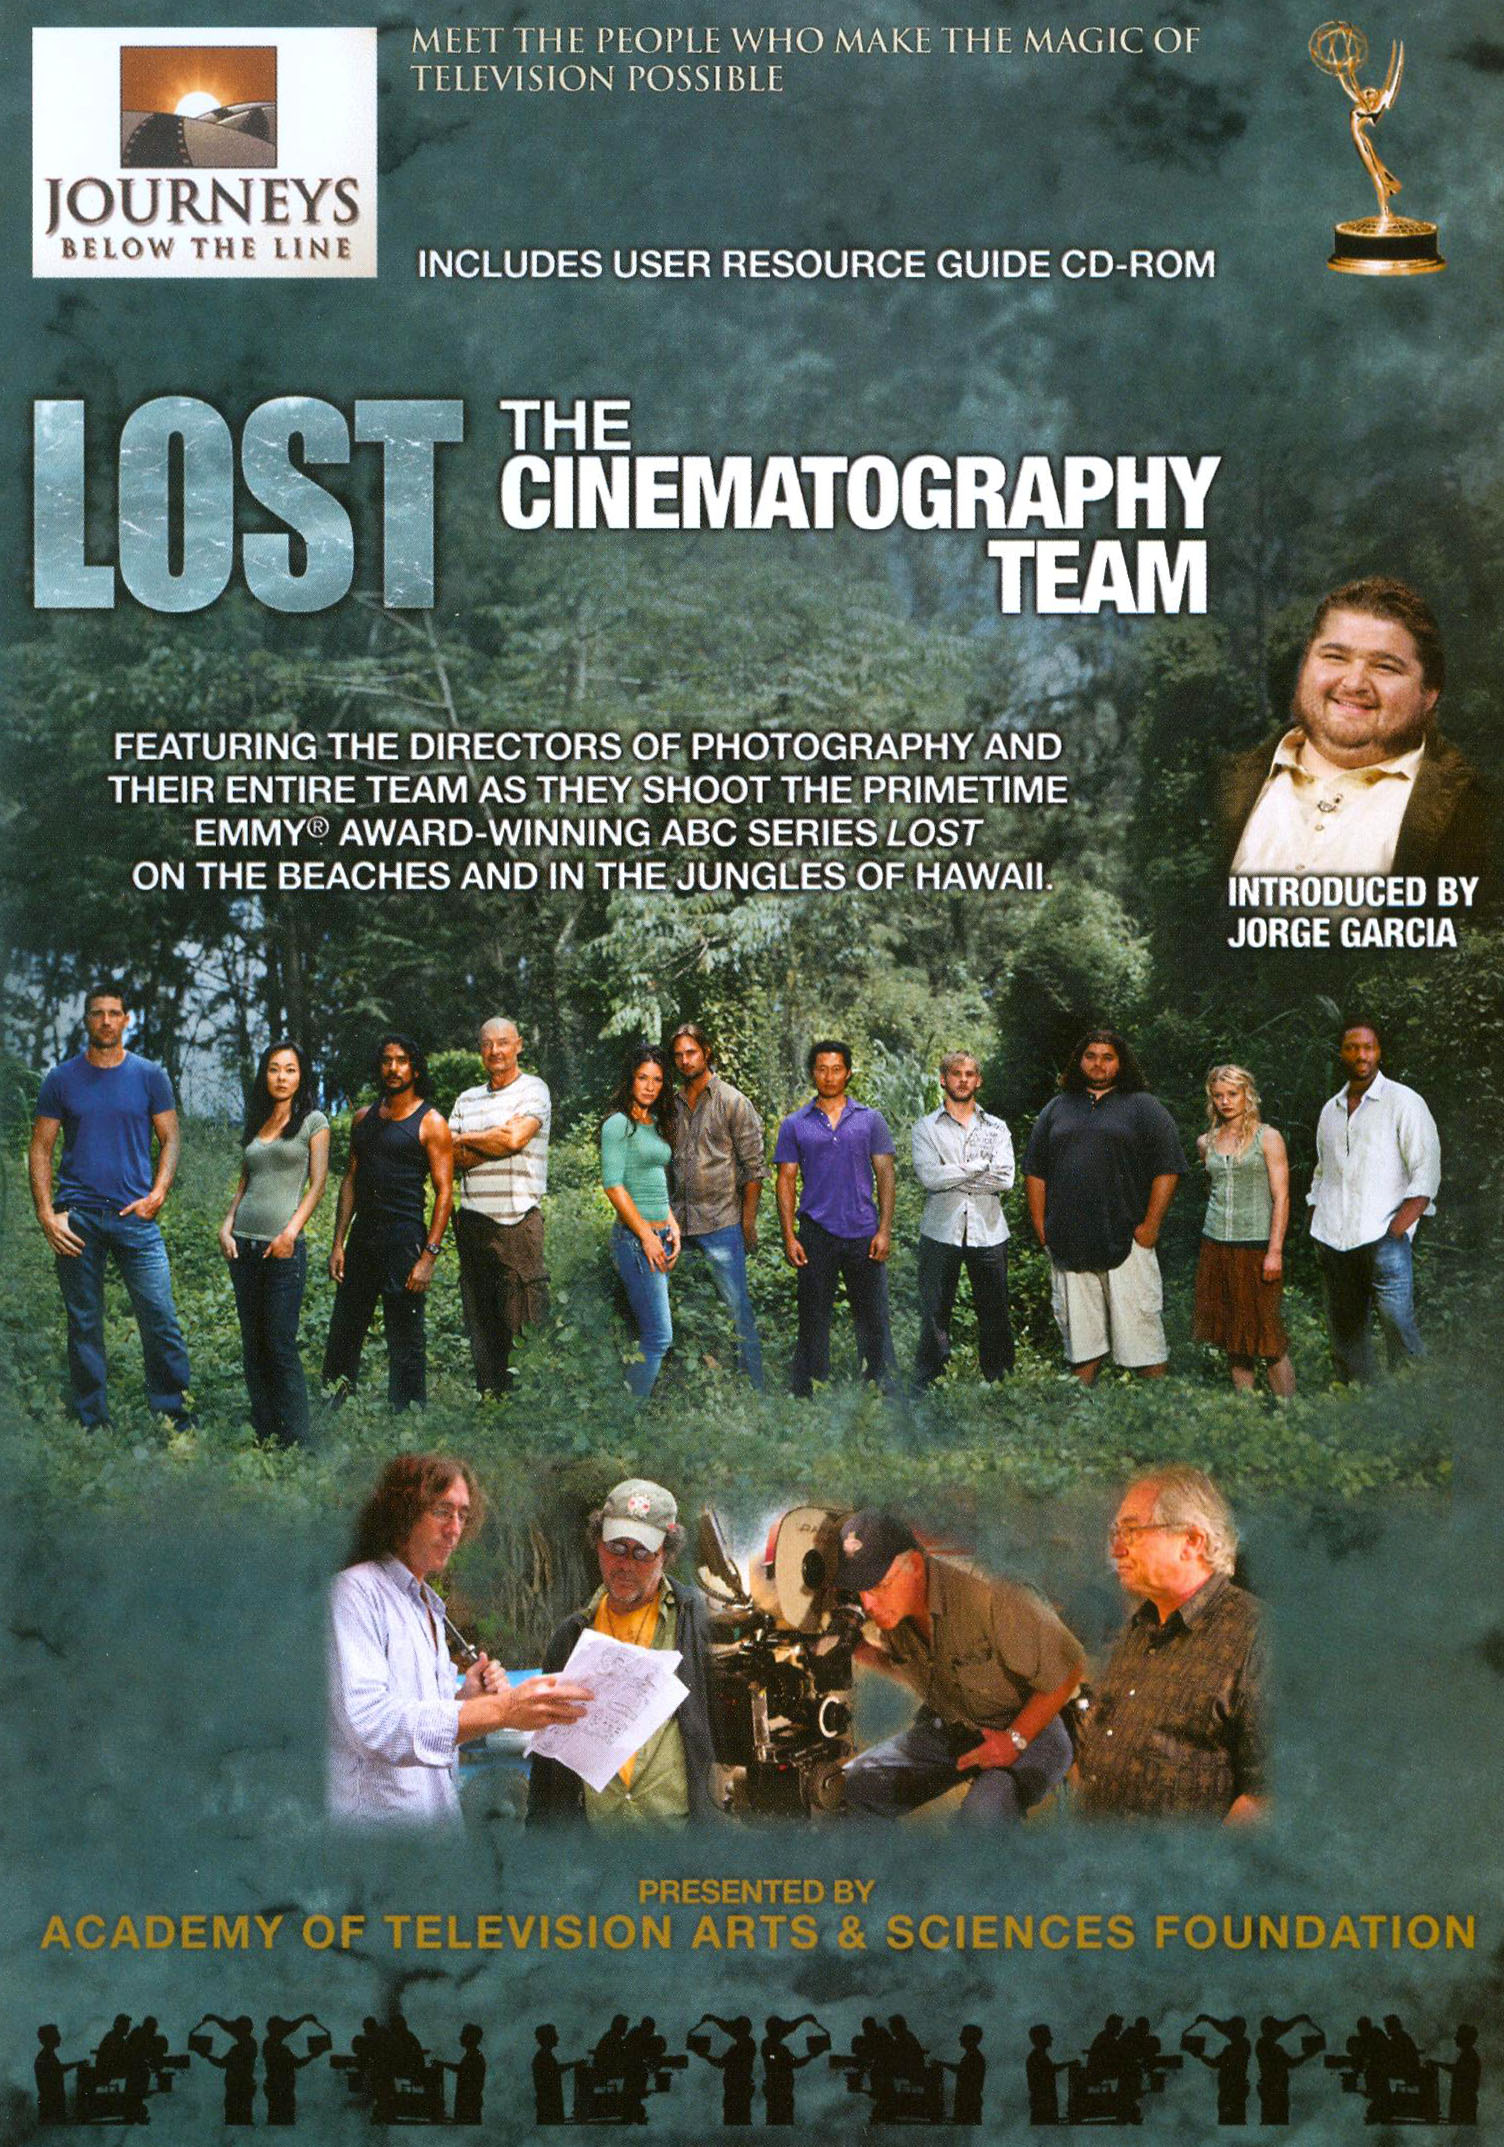 Journeys Below the Line: Lost: The Cinematography Team